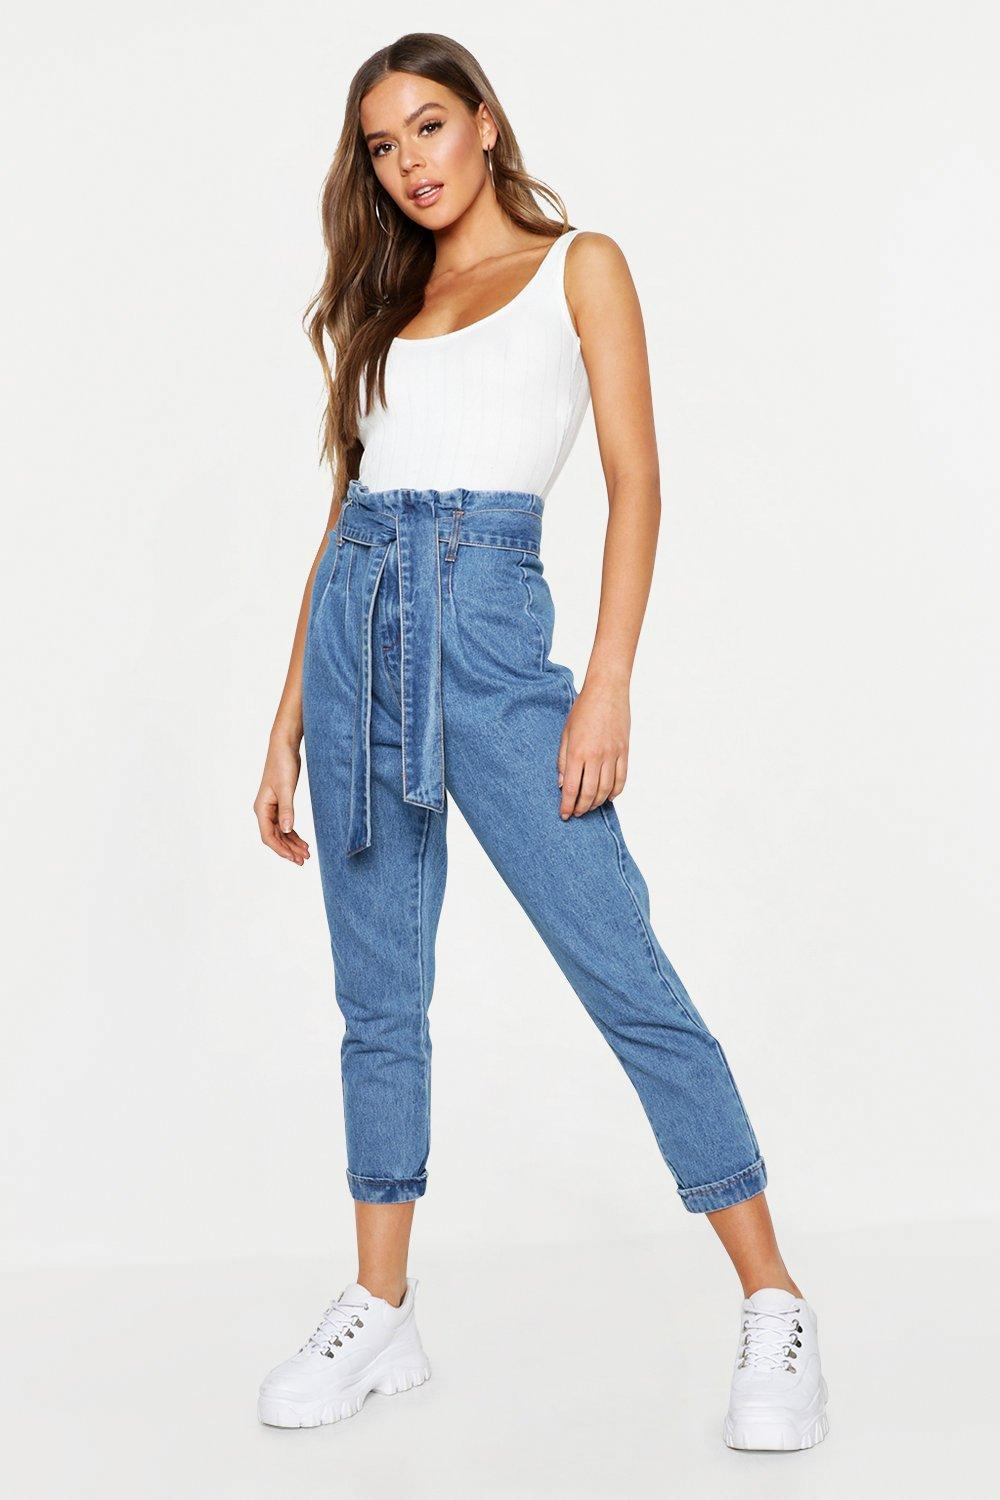 bright in luster luxuriant in design lovely design High Rise Paper Bag Waist Tapered Mom Jean | Boohoo